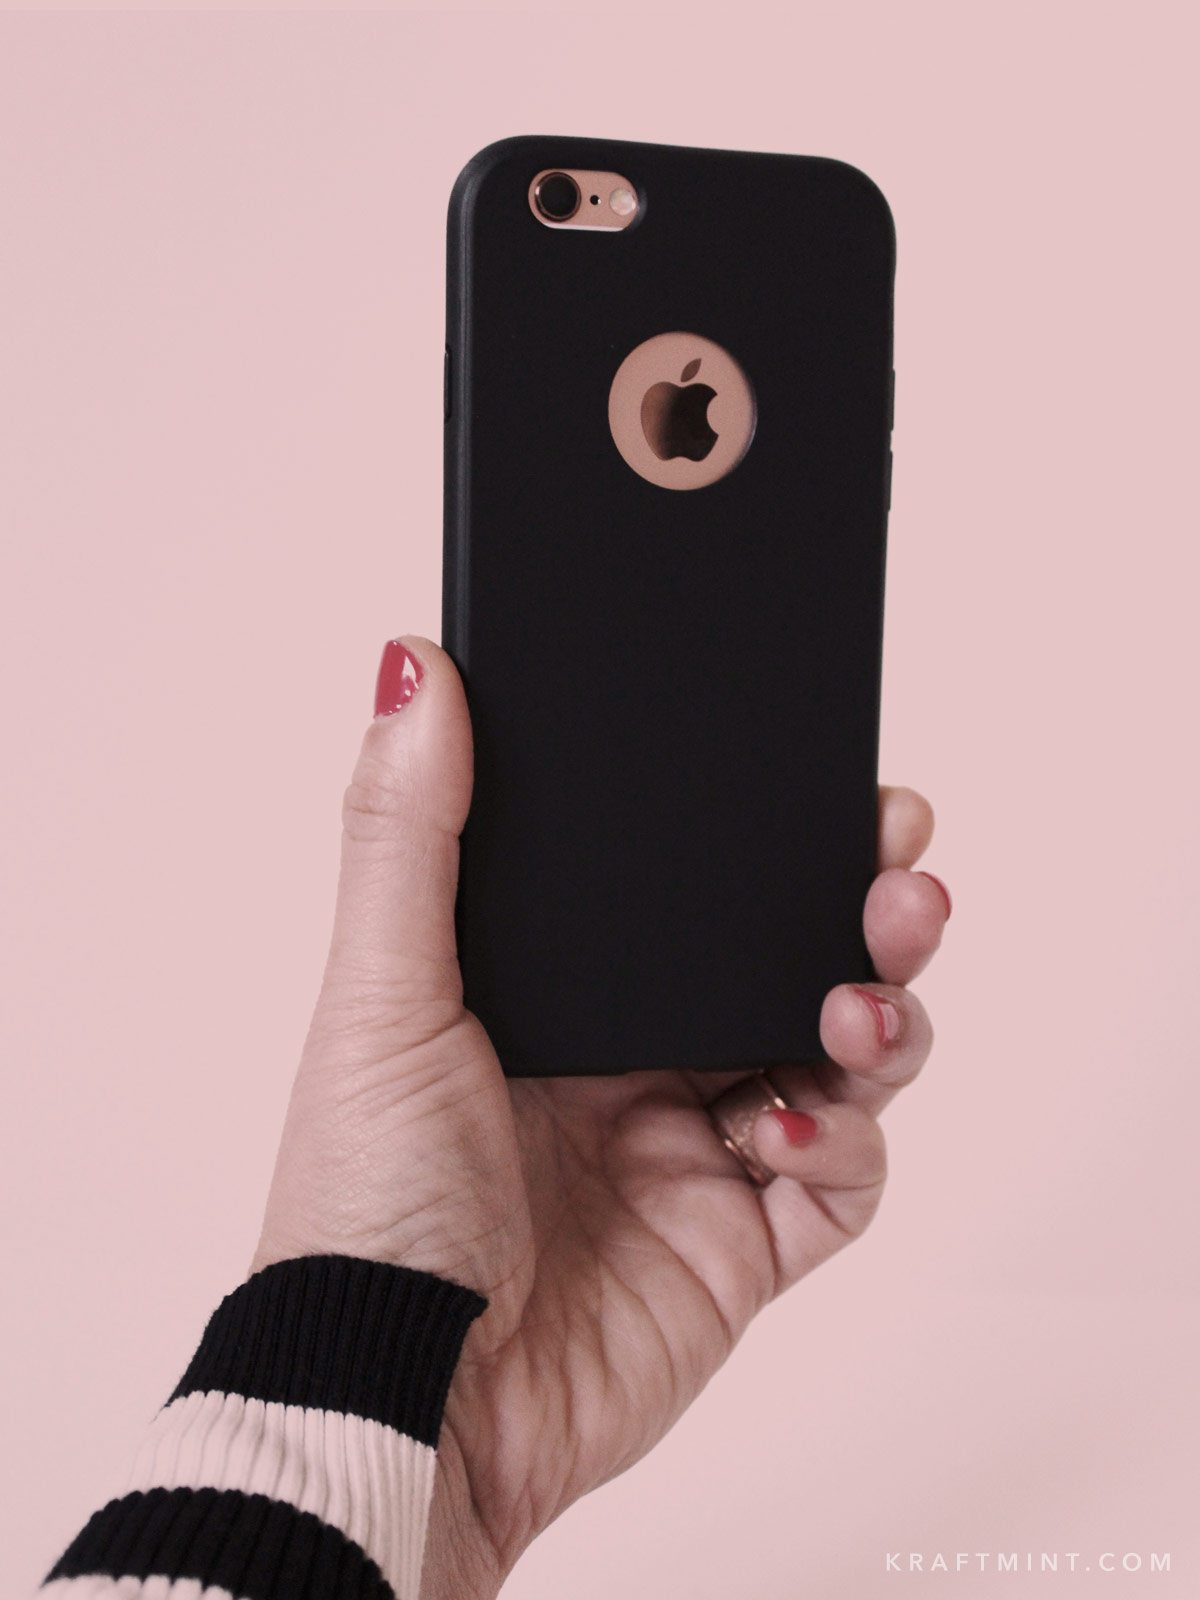 A modern and minimalist iphone case